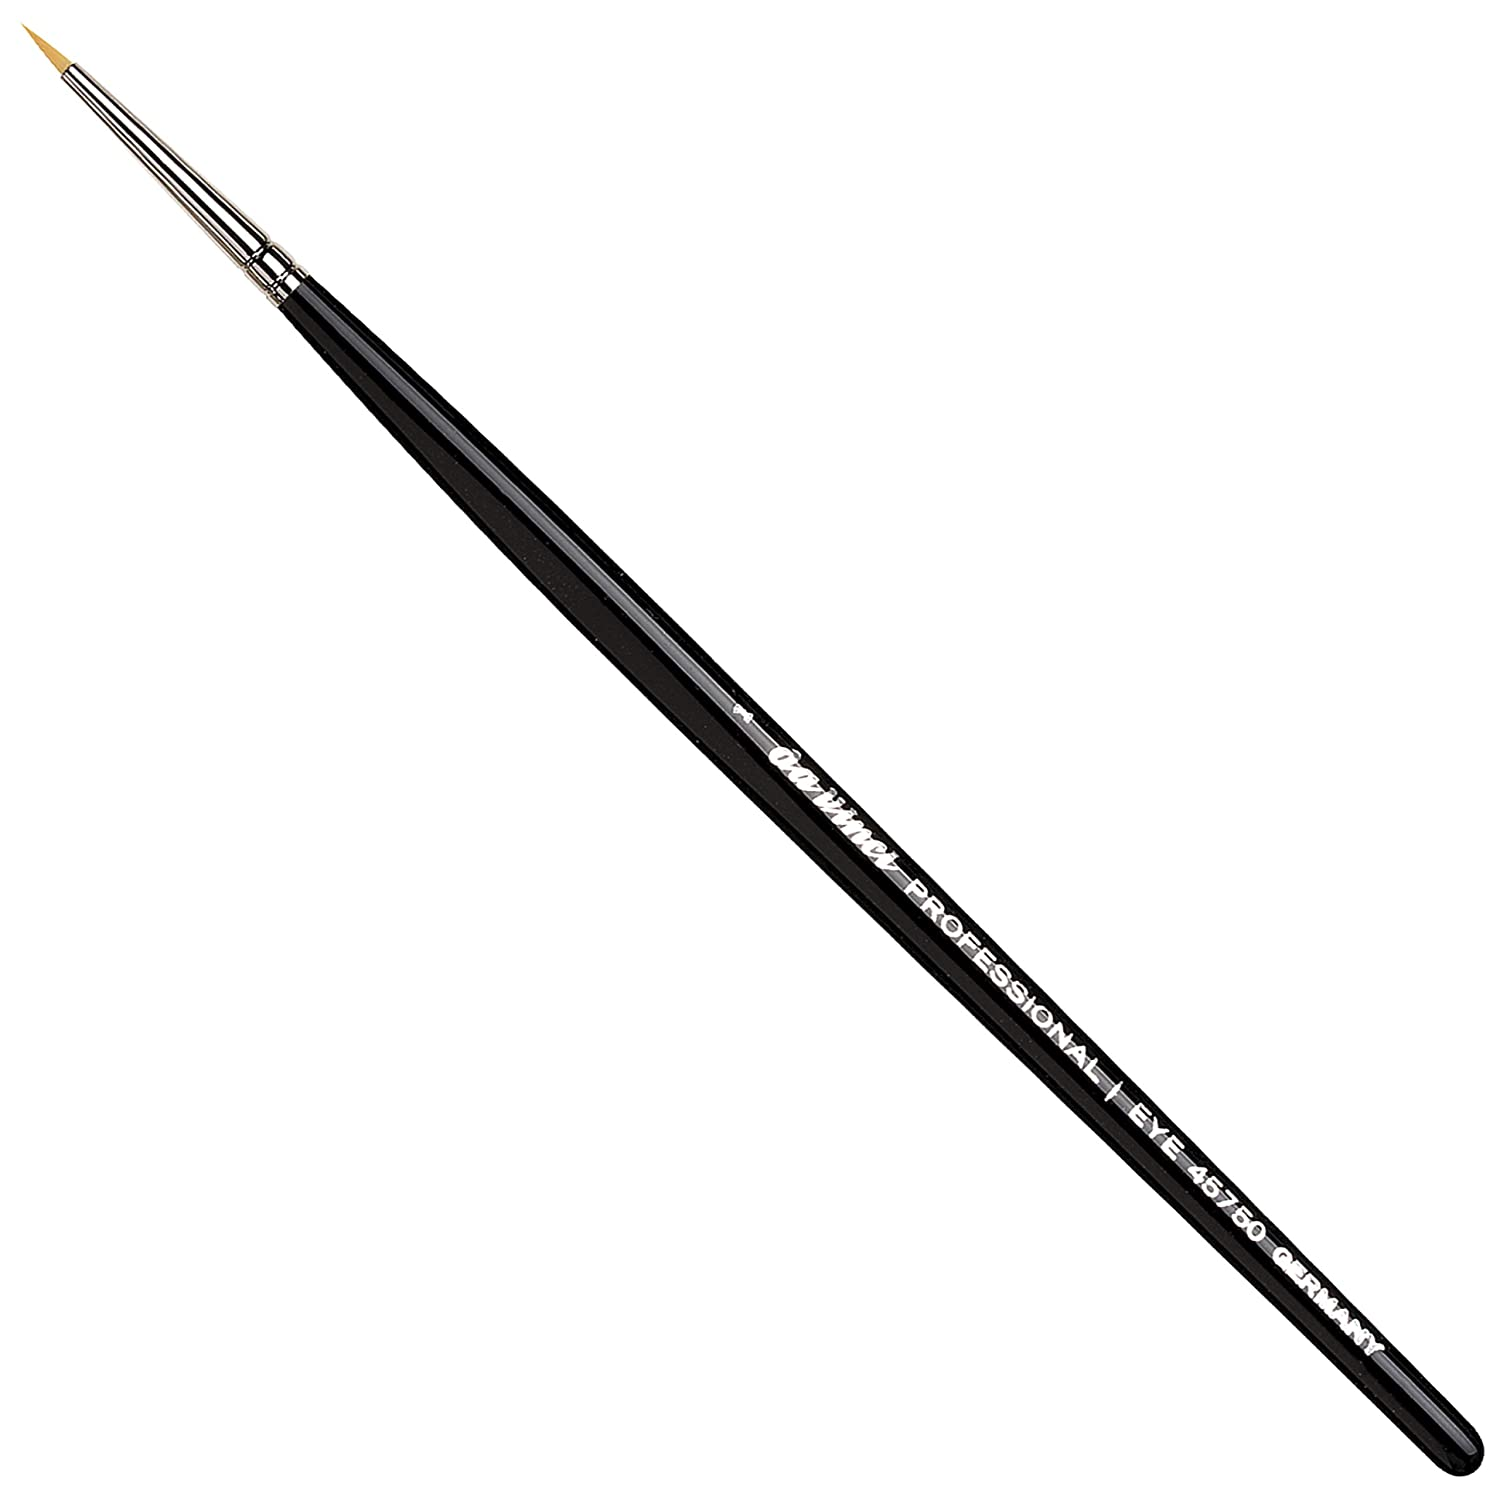 da Vinci Cosmetics Professional Series 45750 - Eyeliner Brush, Pointed Round, Fine Synthetic Fibers - For precise application of Kohl Kajal, humid powder, liquid eyeliner and gel eyeliner: Beauty